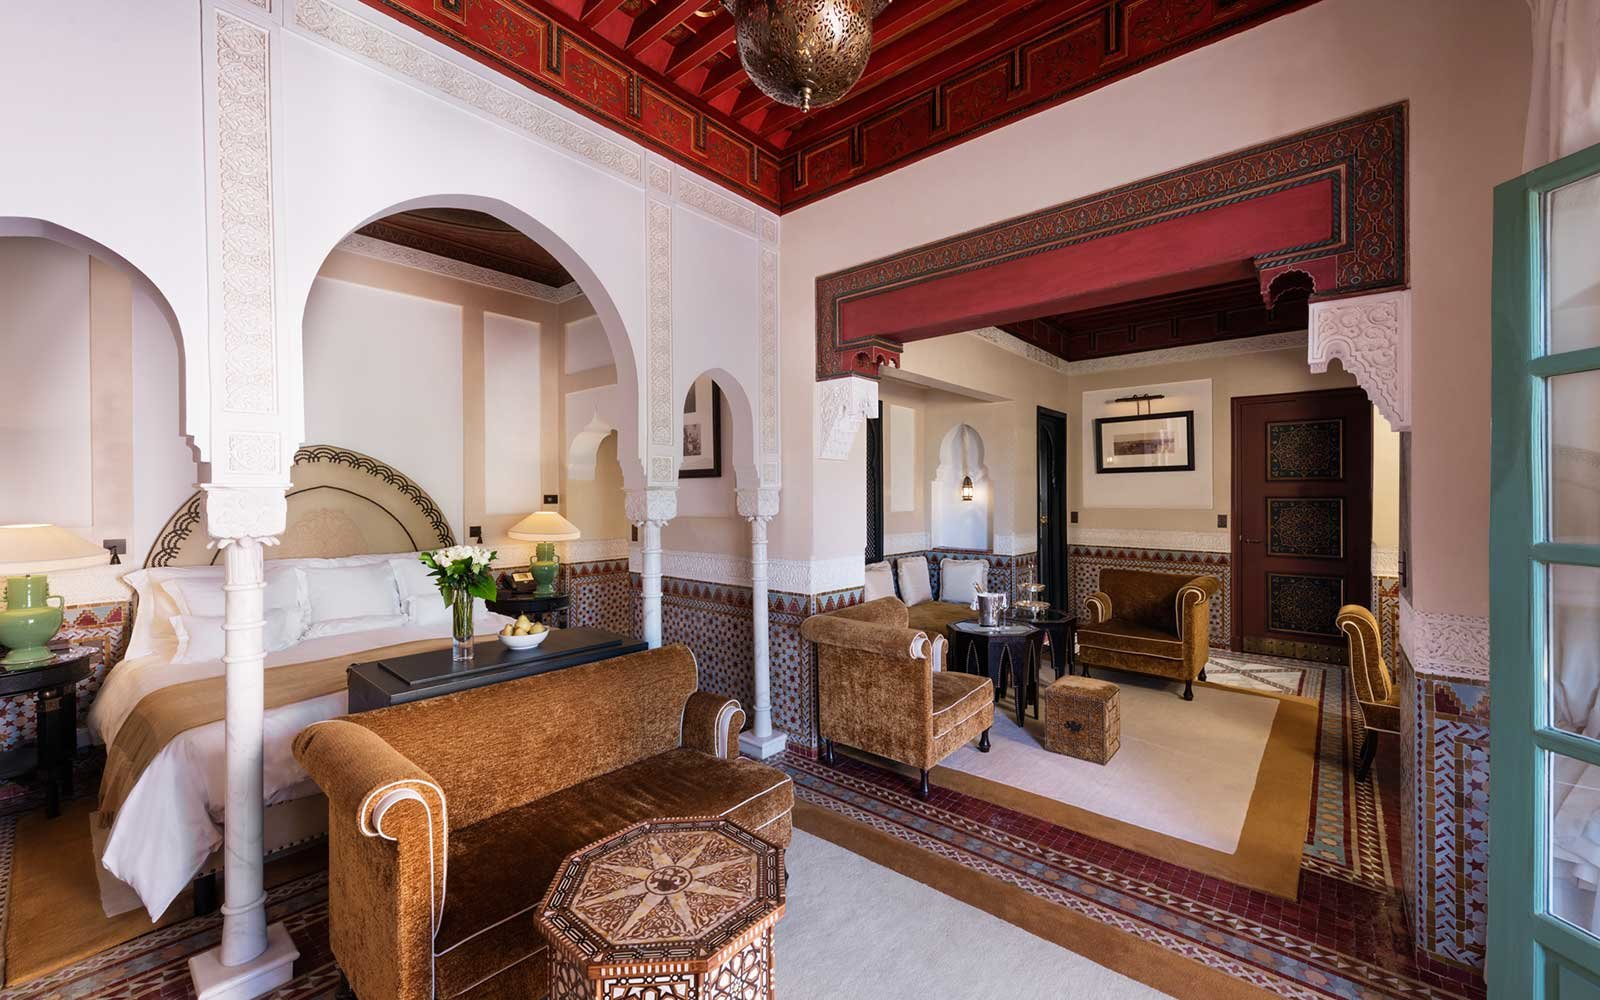 La Mamounia Hotel in North Africa and Middle East